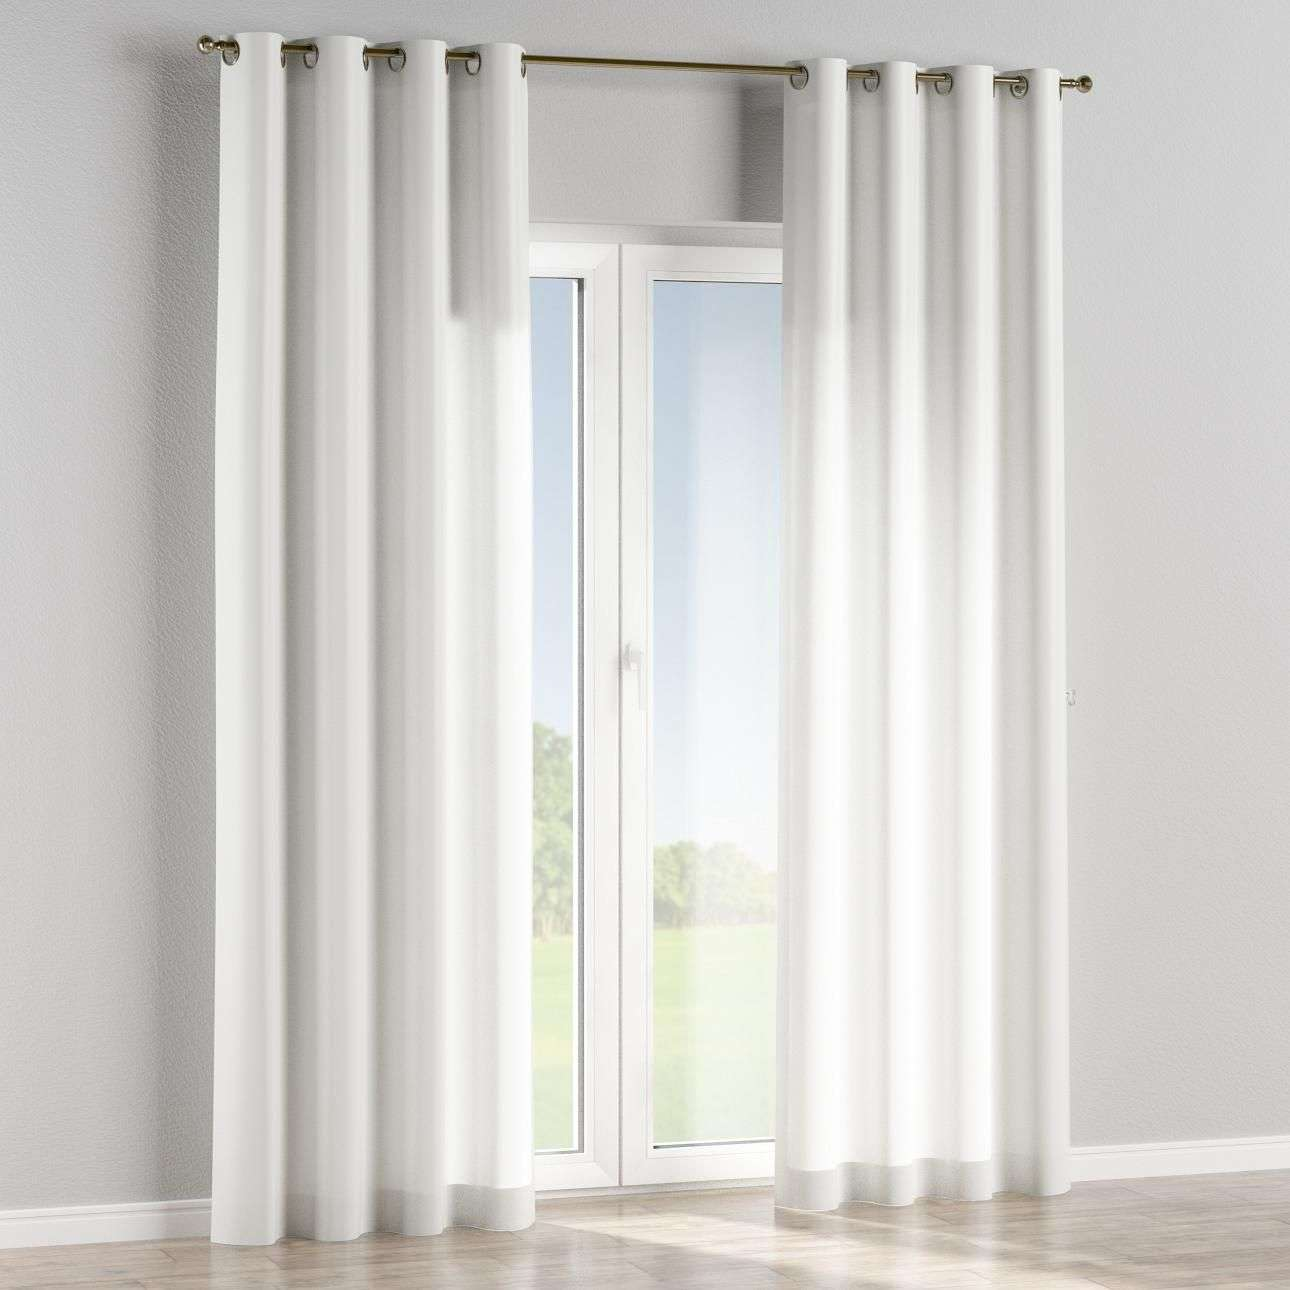 Eyelet lined curtains in collection Rustica, fabric: 138-15